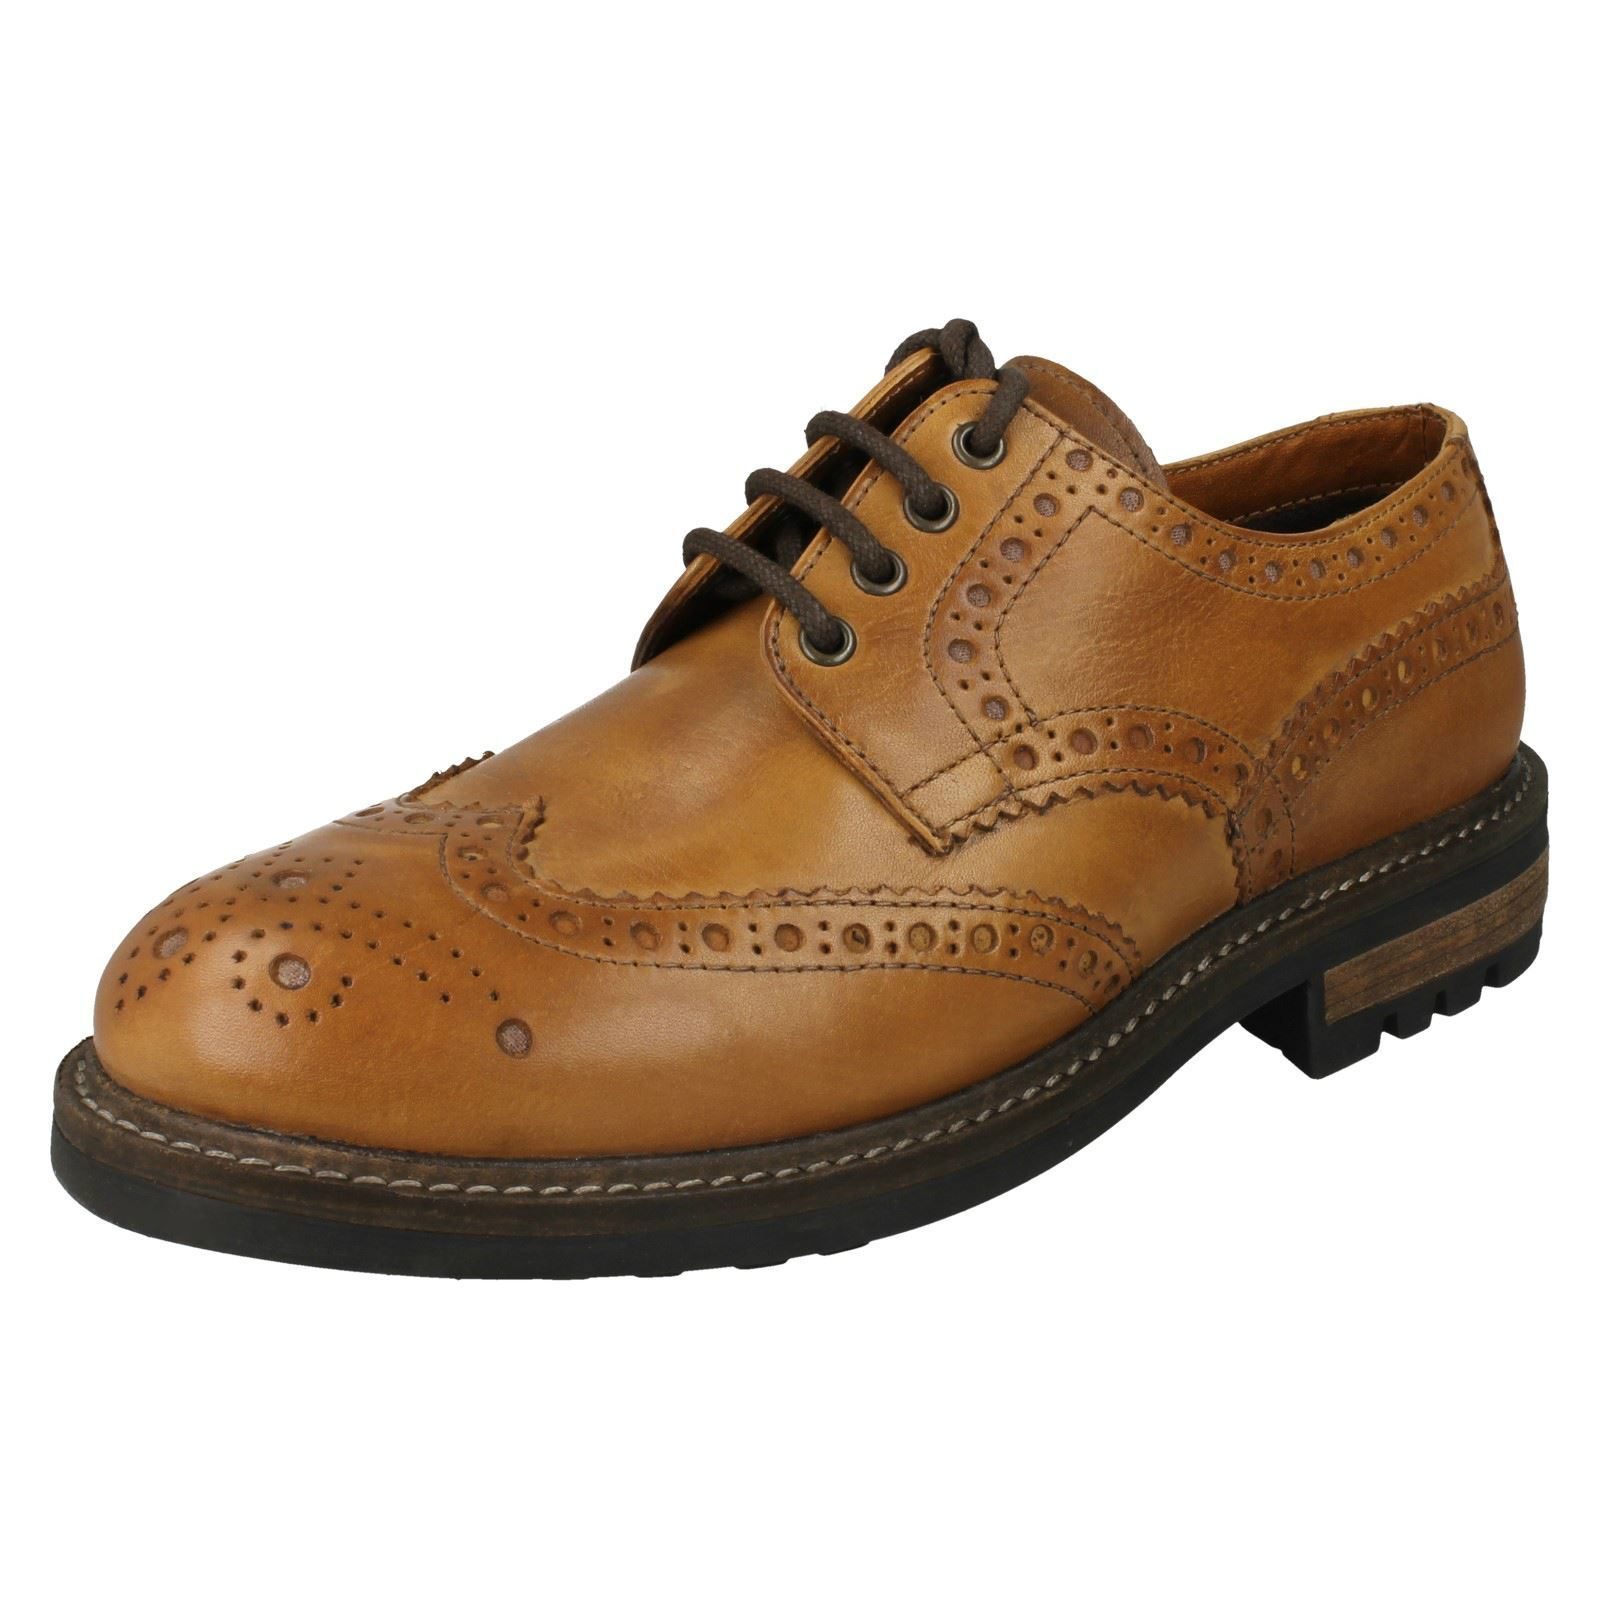 'Mens Red Tape' Round Toe Formal Brogues - Bracken Classic